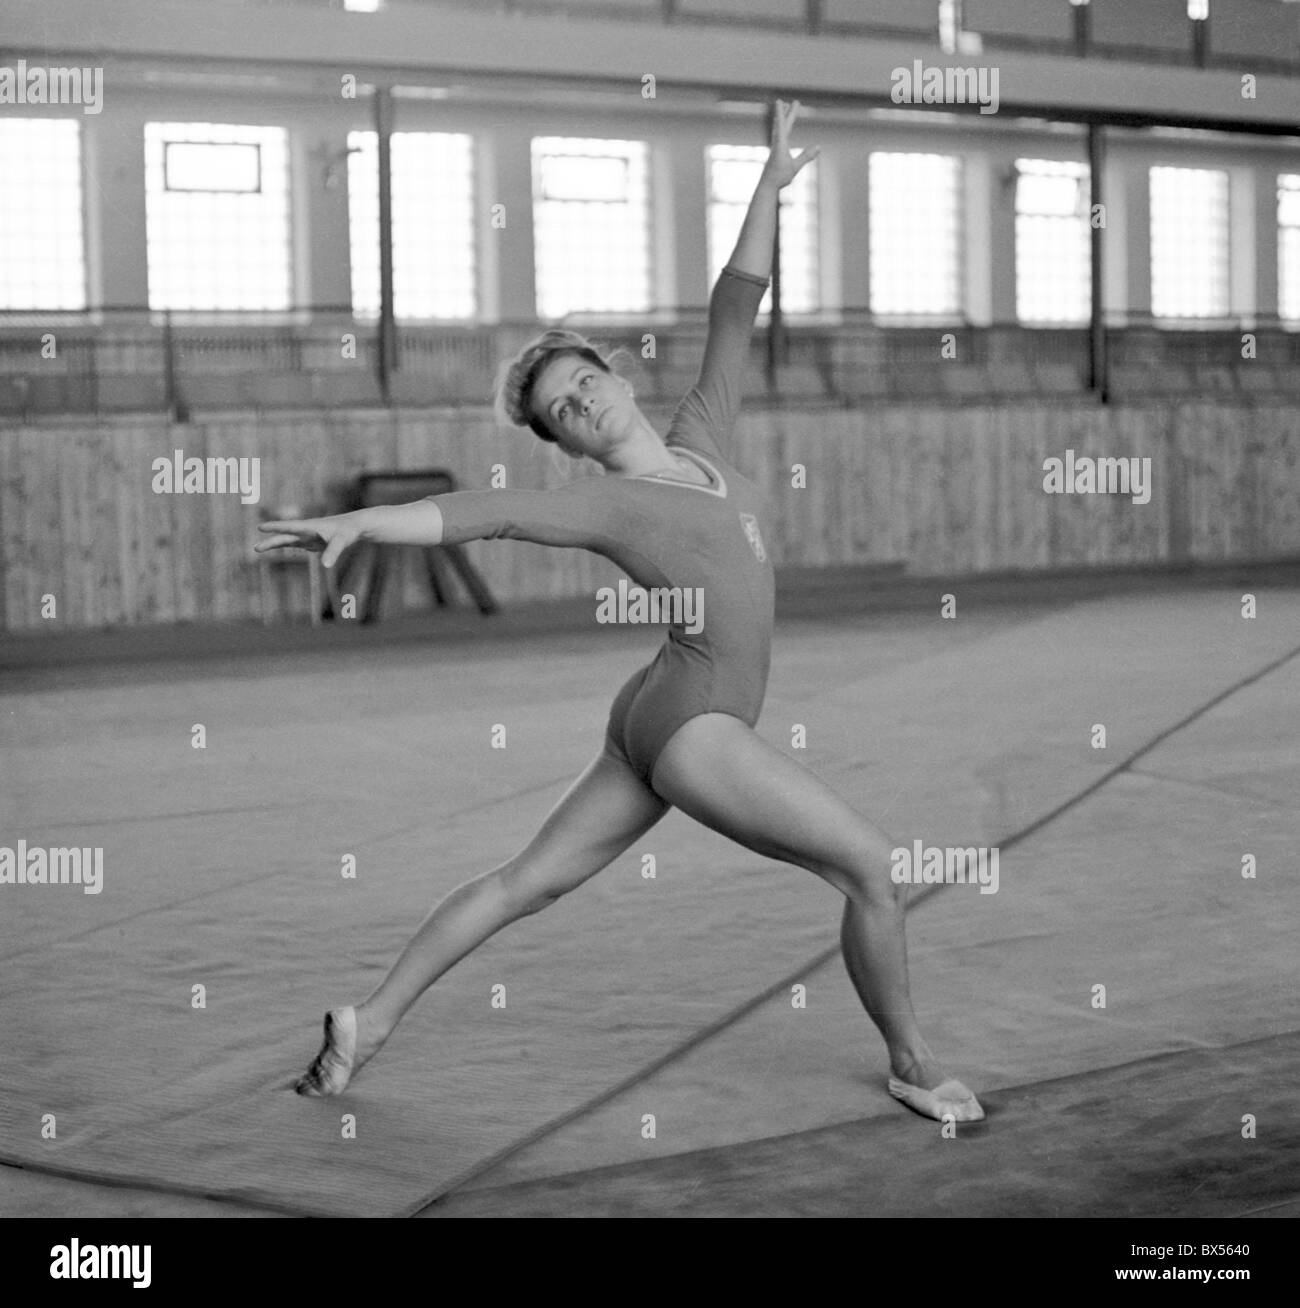 Legs Vera Caslavska 11 Olympic medals nudes (24 photo) Topless, Facebook, panties